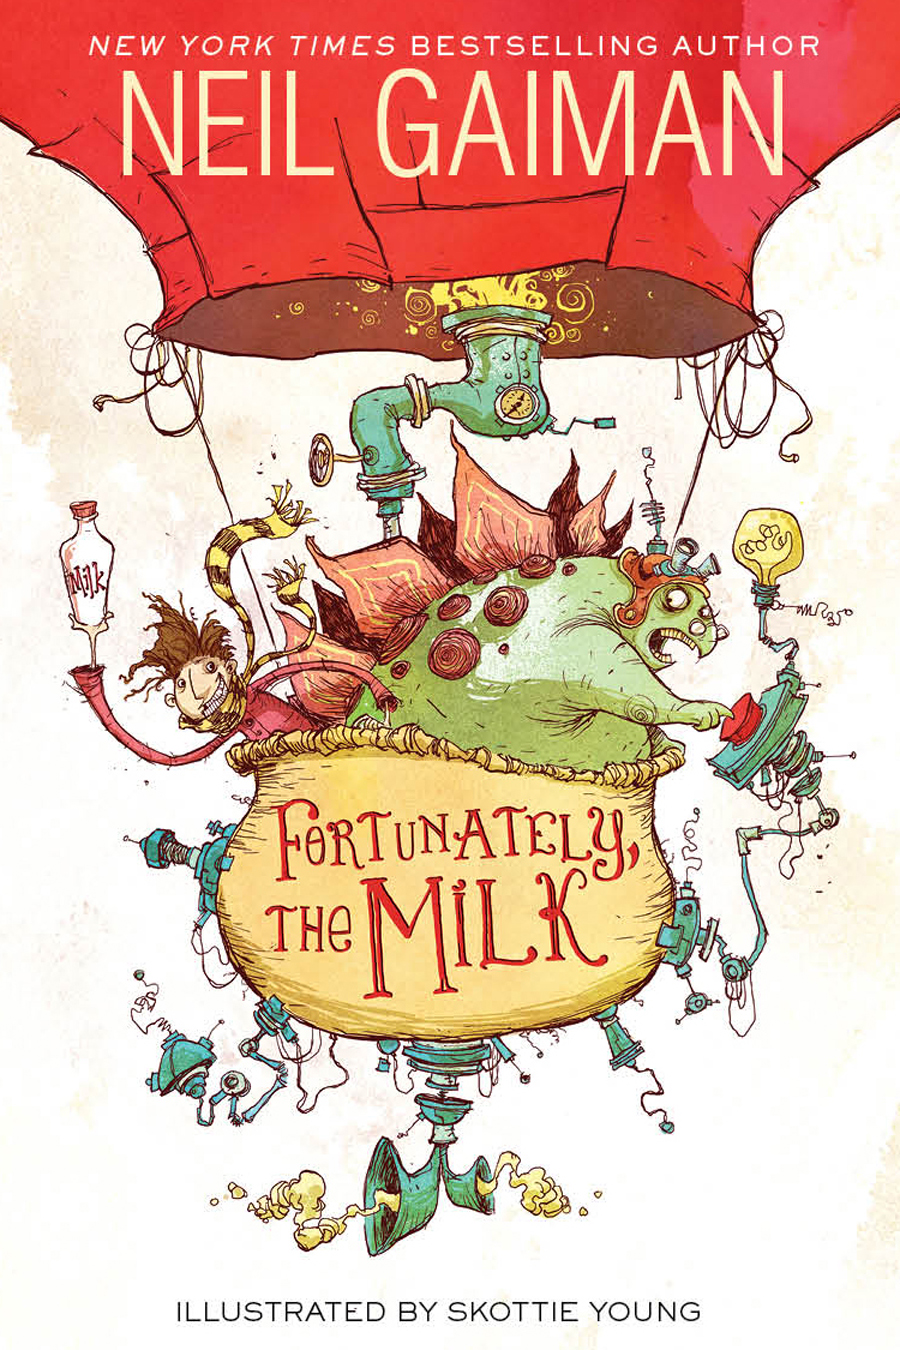 http://nothingbutn9erz.blogspot.co.at/2015/12/fortunately-the-milk-niel-gaiman-rezension.html